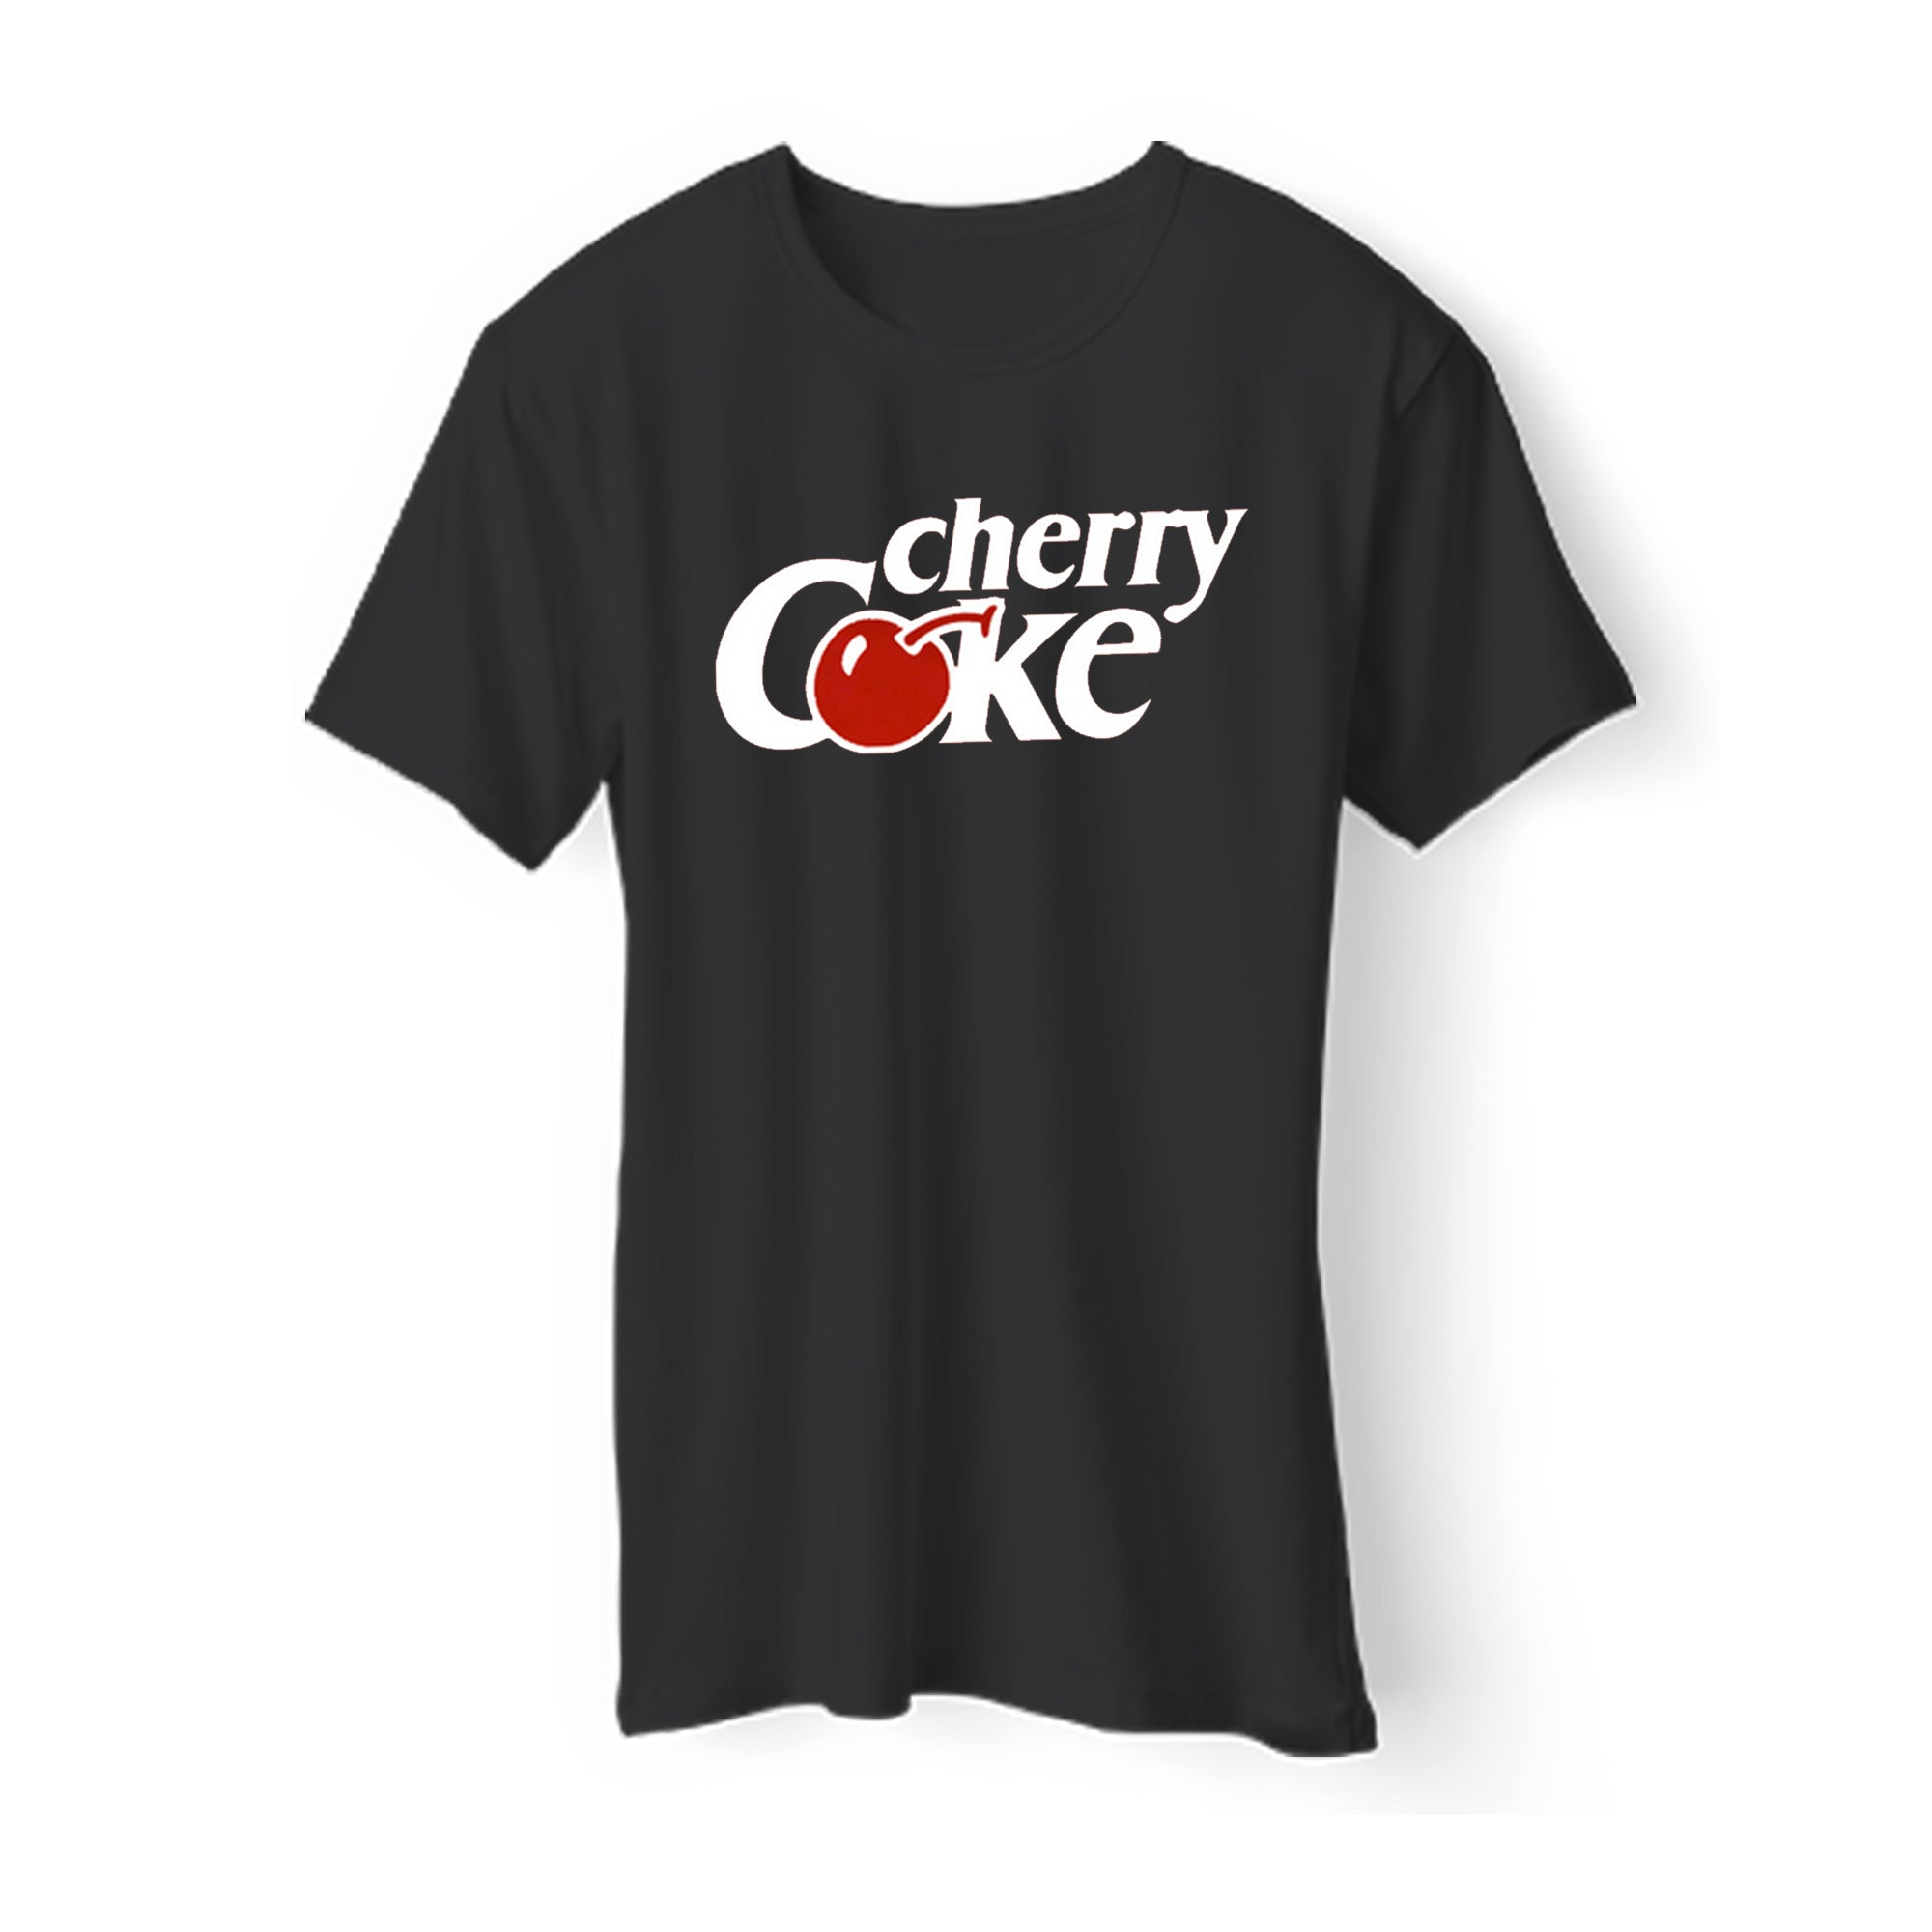 Cherry Coke Man's T-Shirt